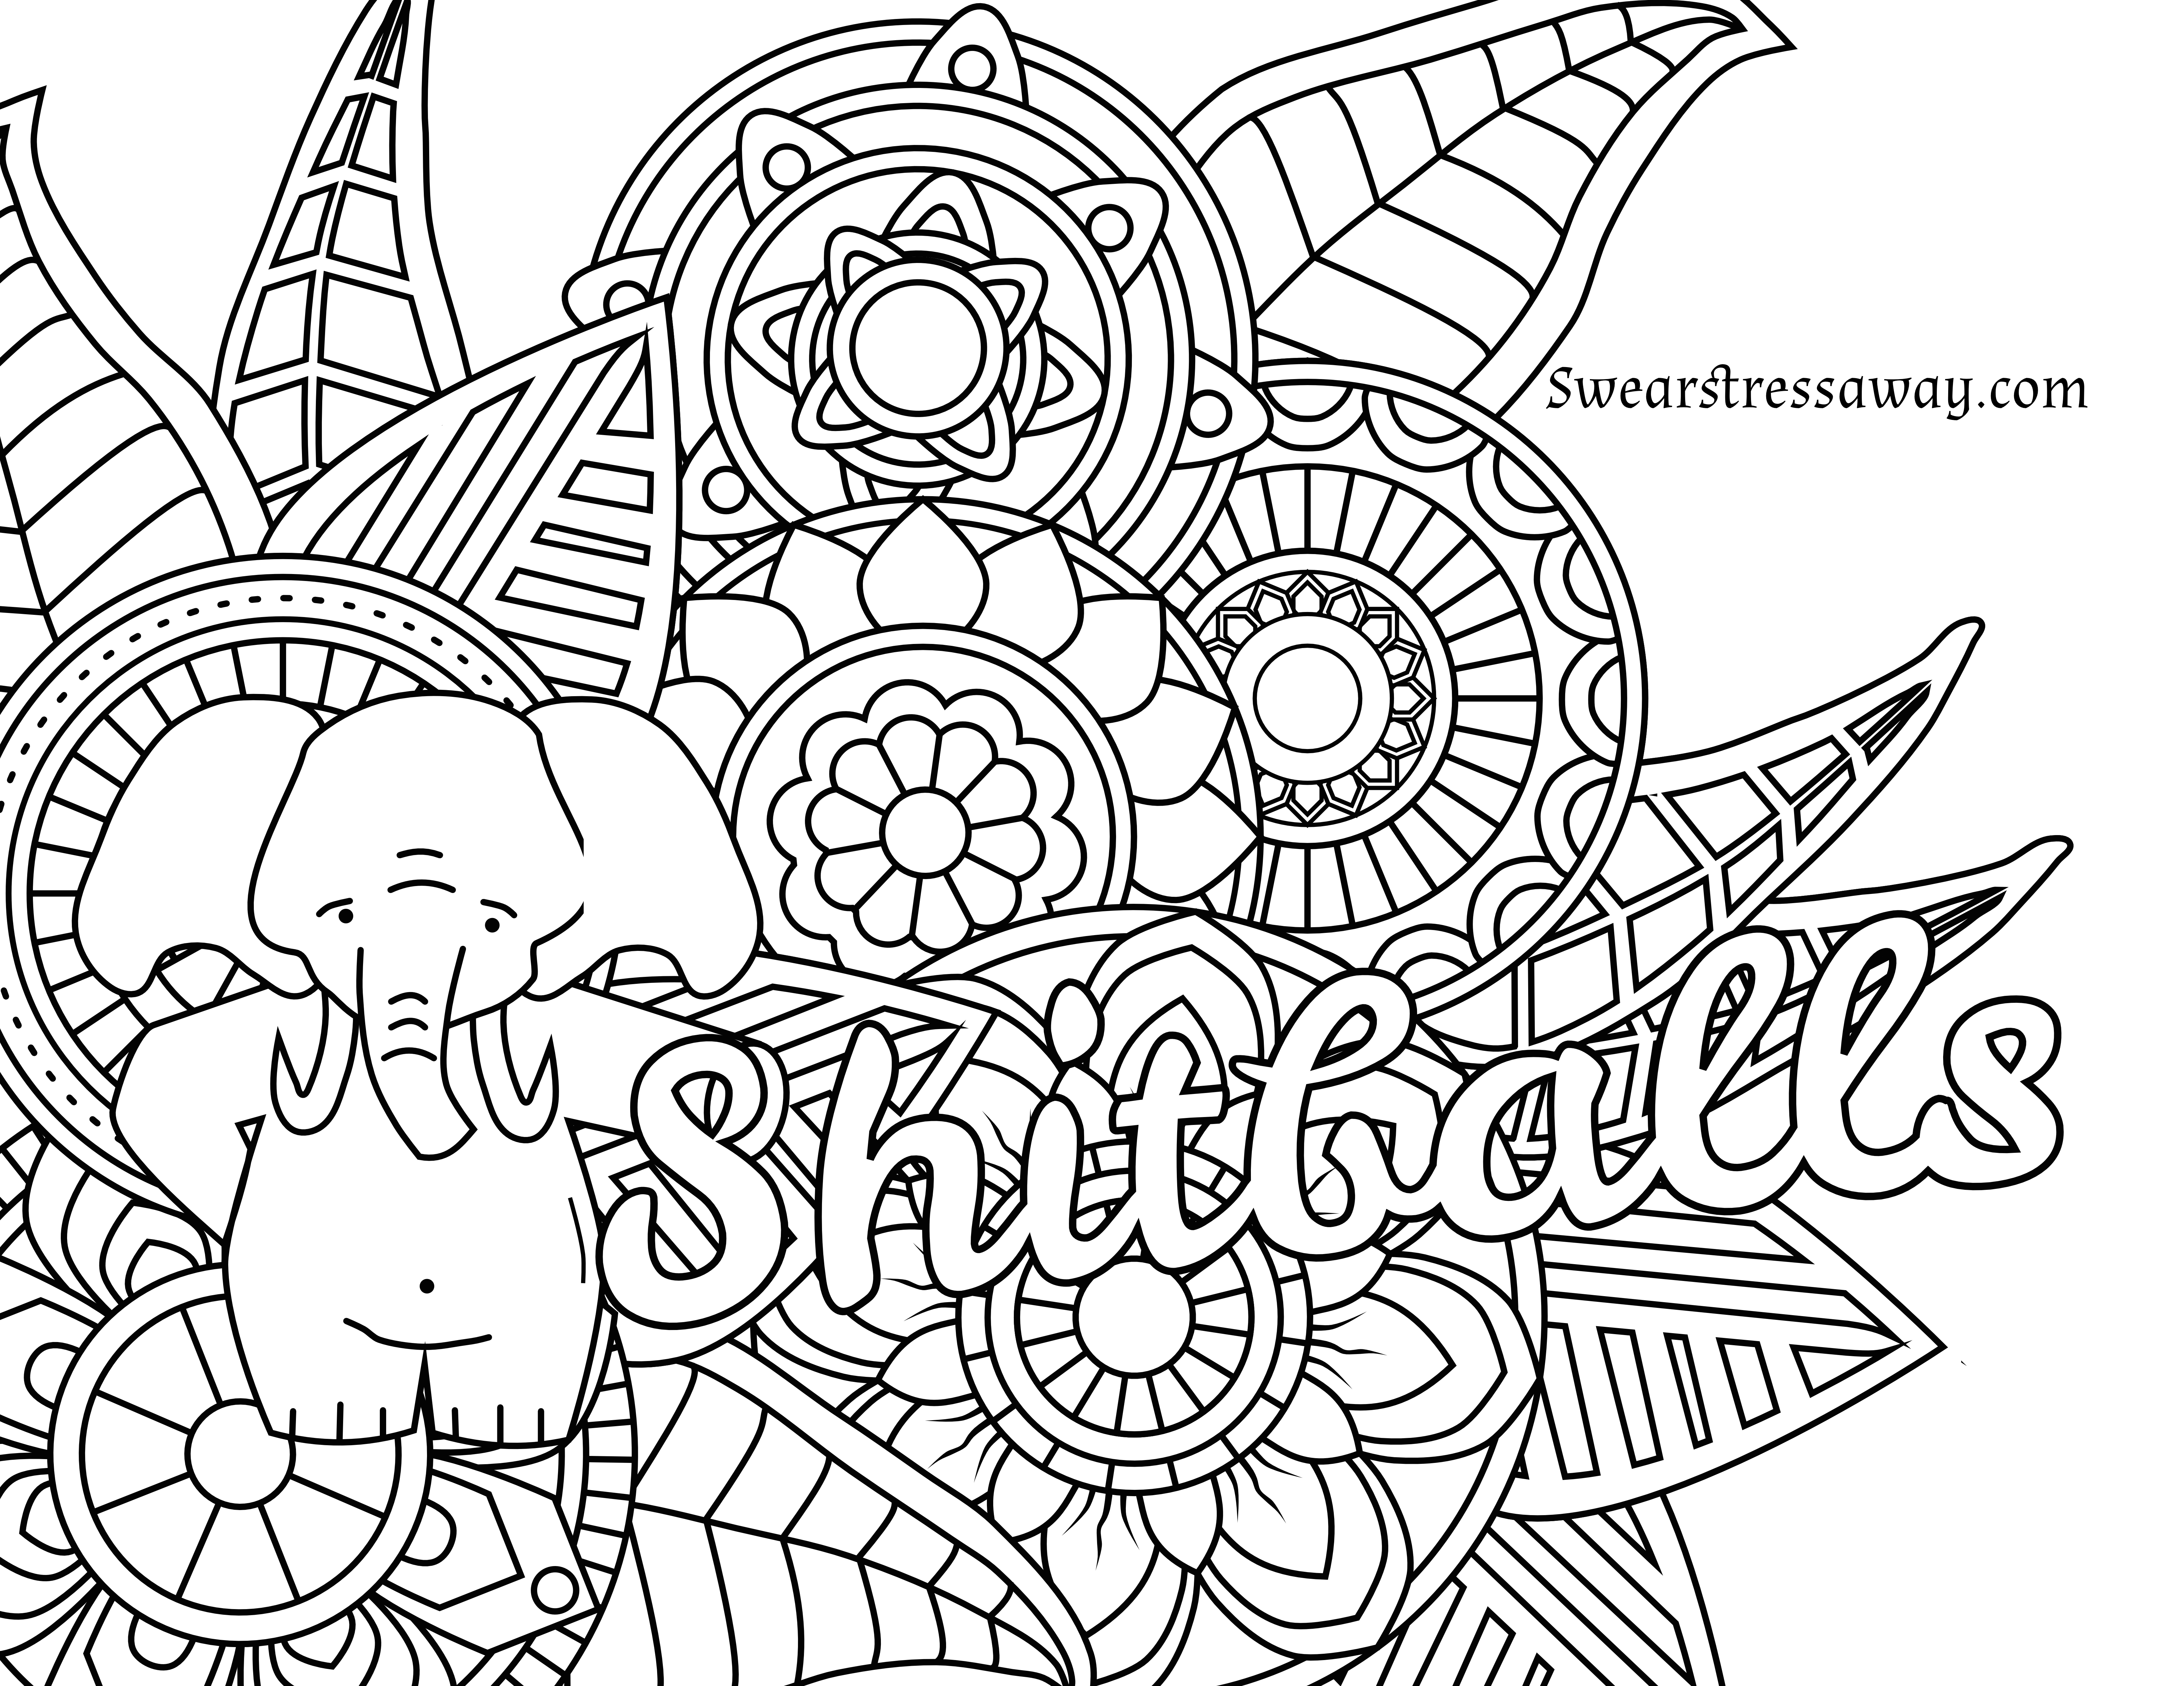 Coloring Ideas : Coloring Images For Adults Page Tremendousable - Free Printable Coloring Books For Adults